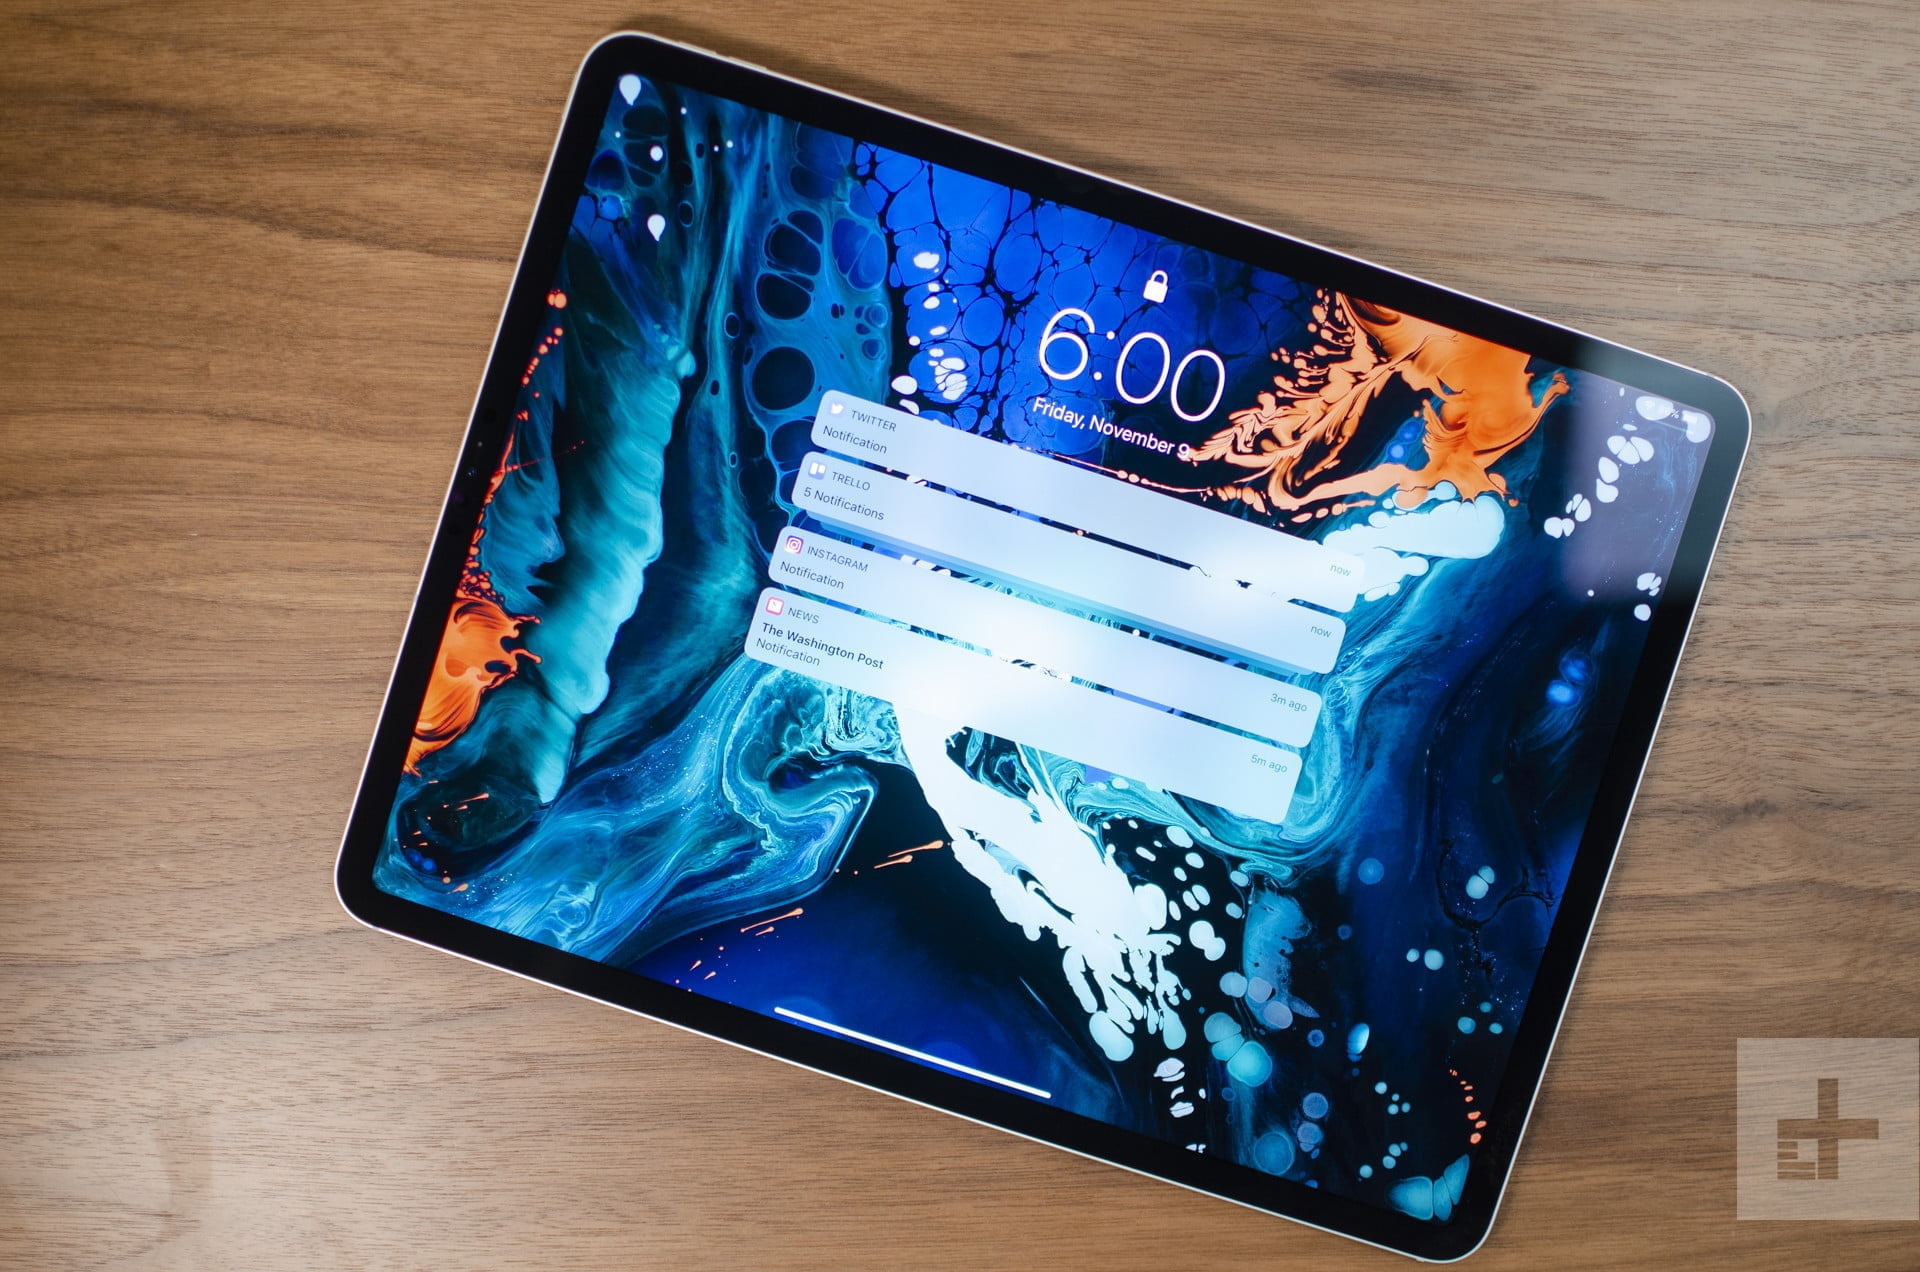 7050b1d54bdfc The Best iPad Pro Tips and Tricks